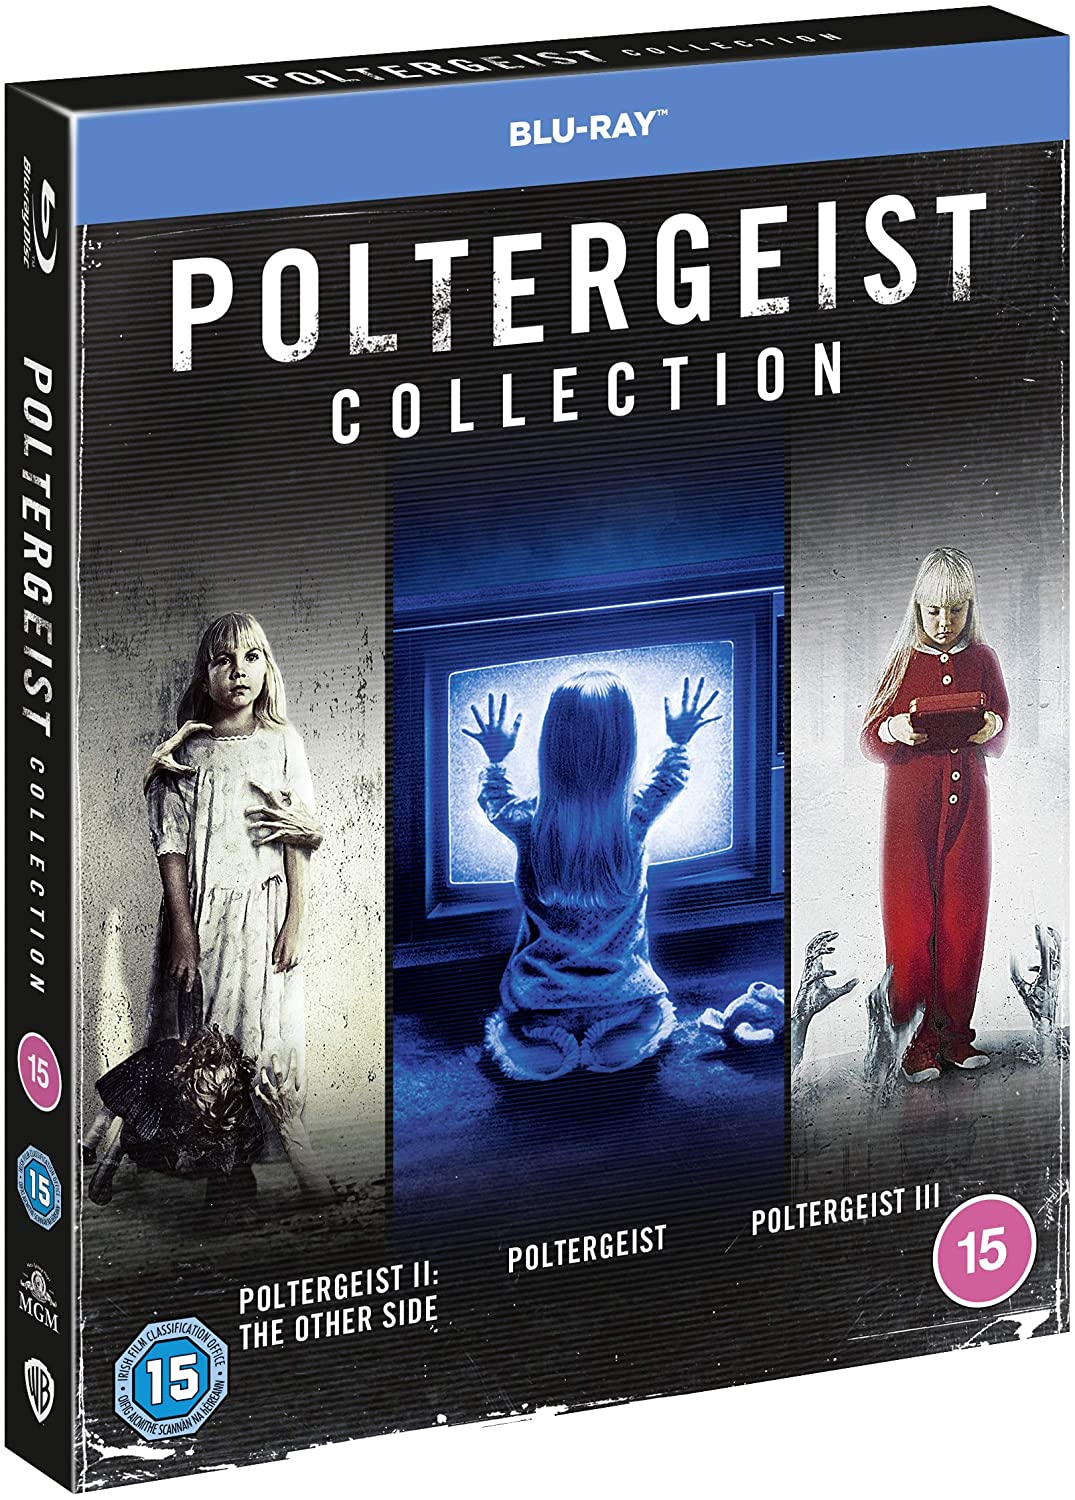 Poltergeist Trilogy UK Blu-Ray